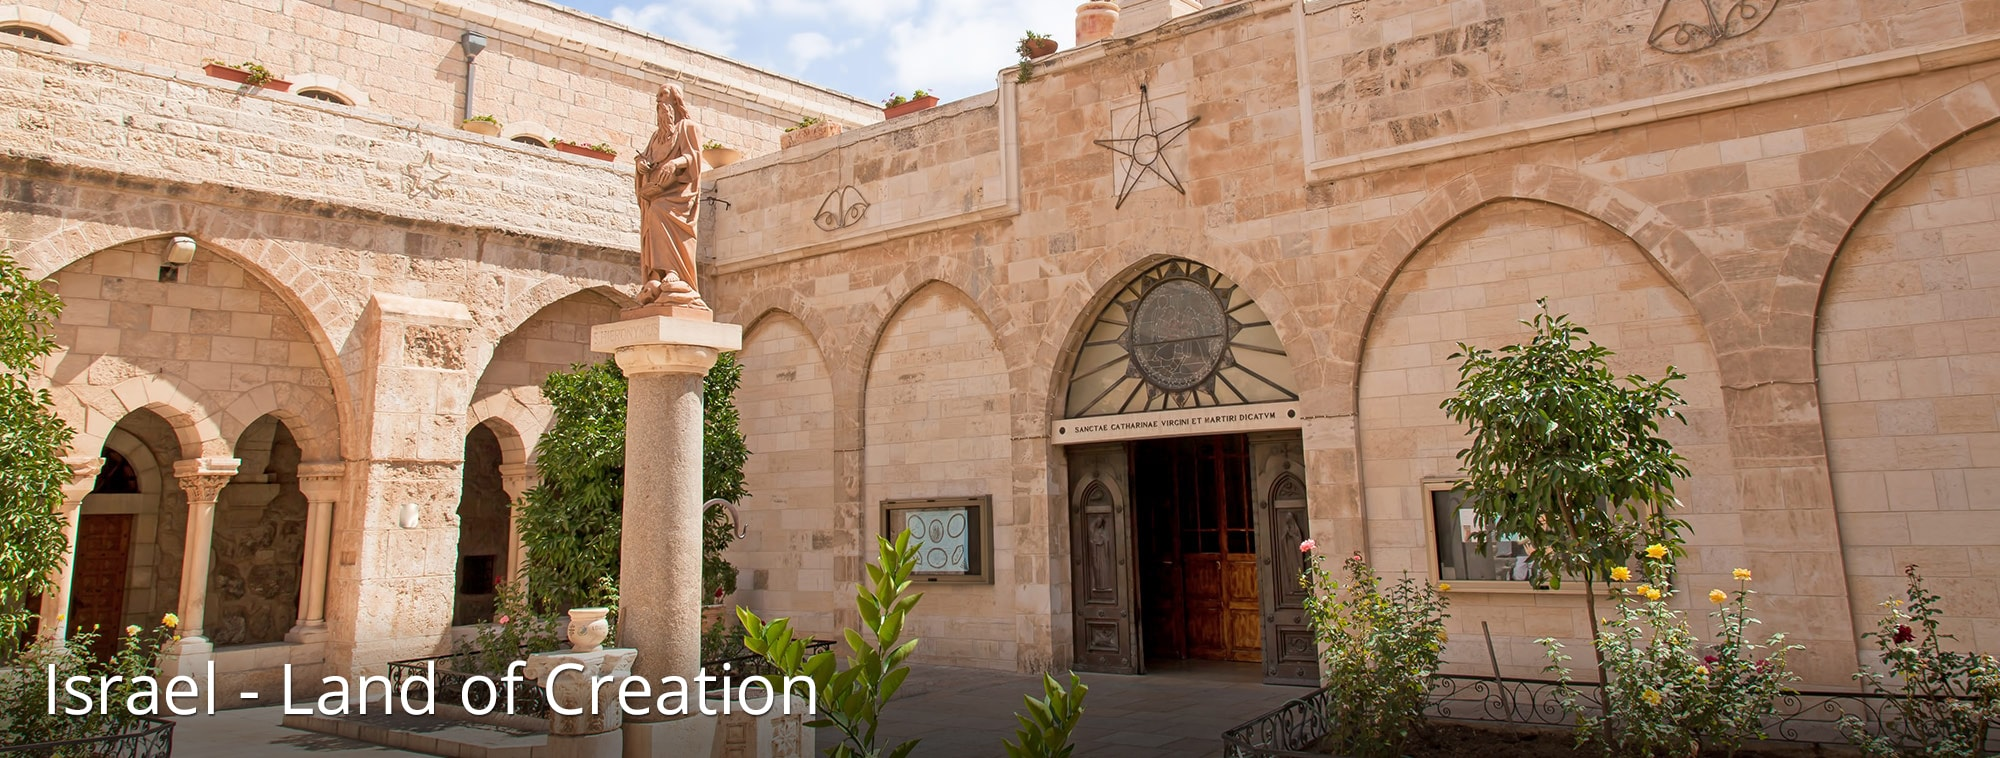 Israel Guided Tours Cheap Israel Vacation Packages To Bethlehem Jerusalem Tel Aviv